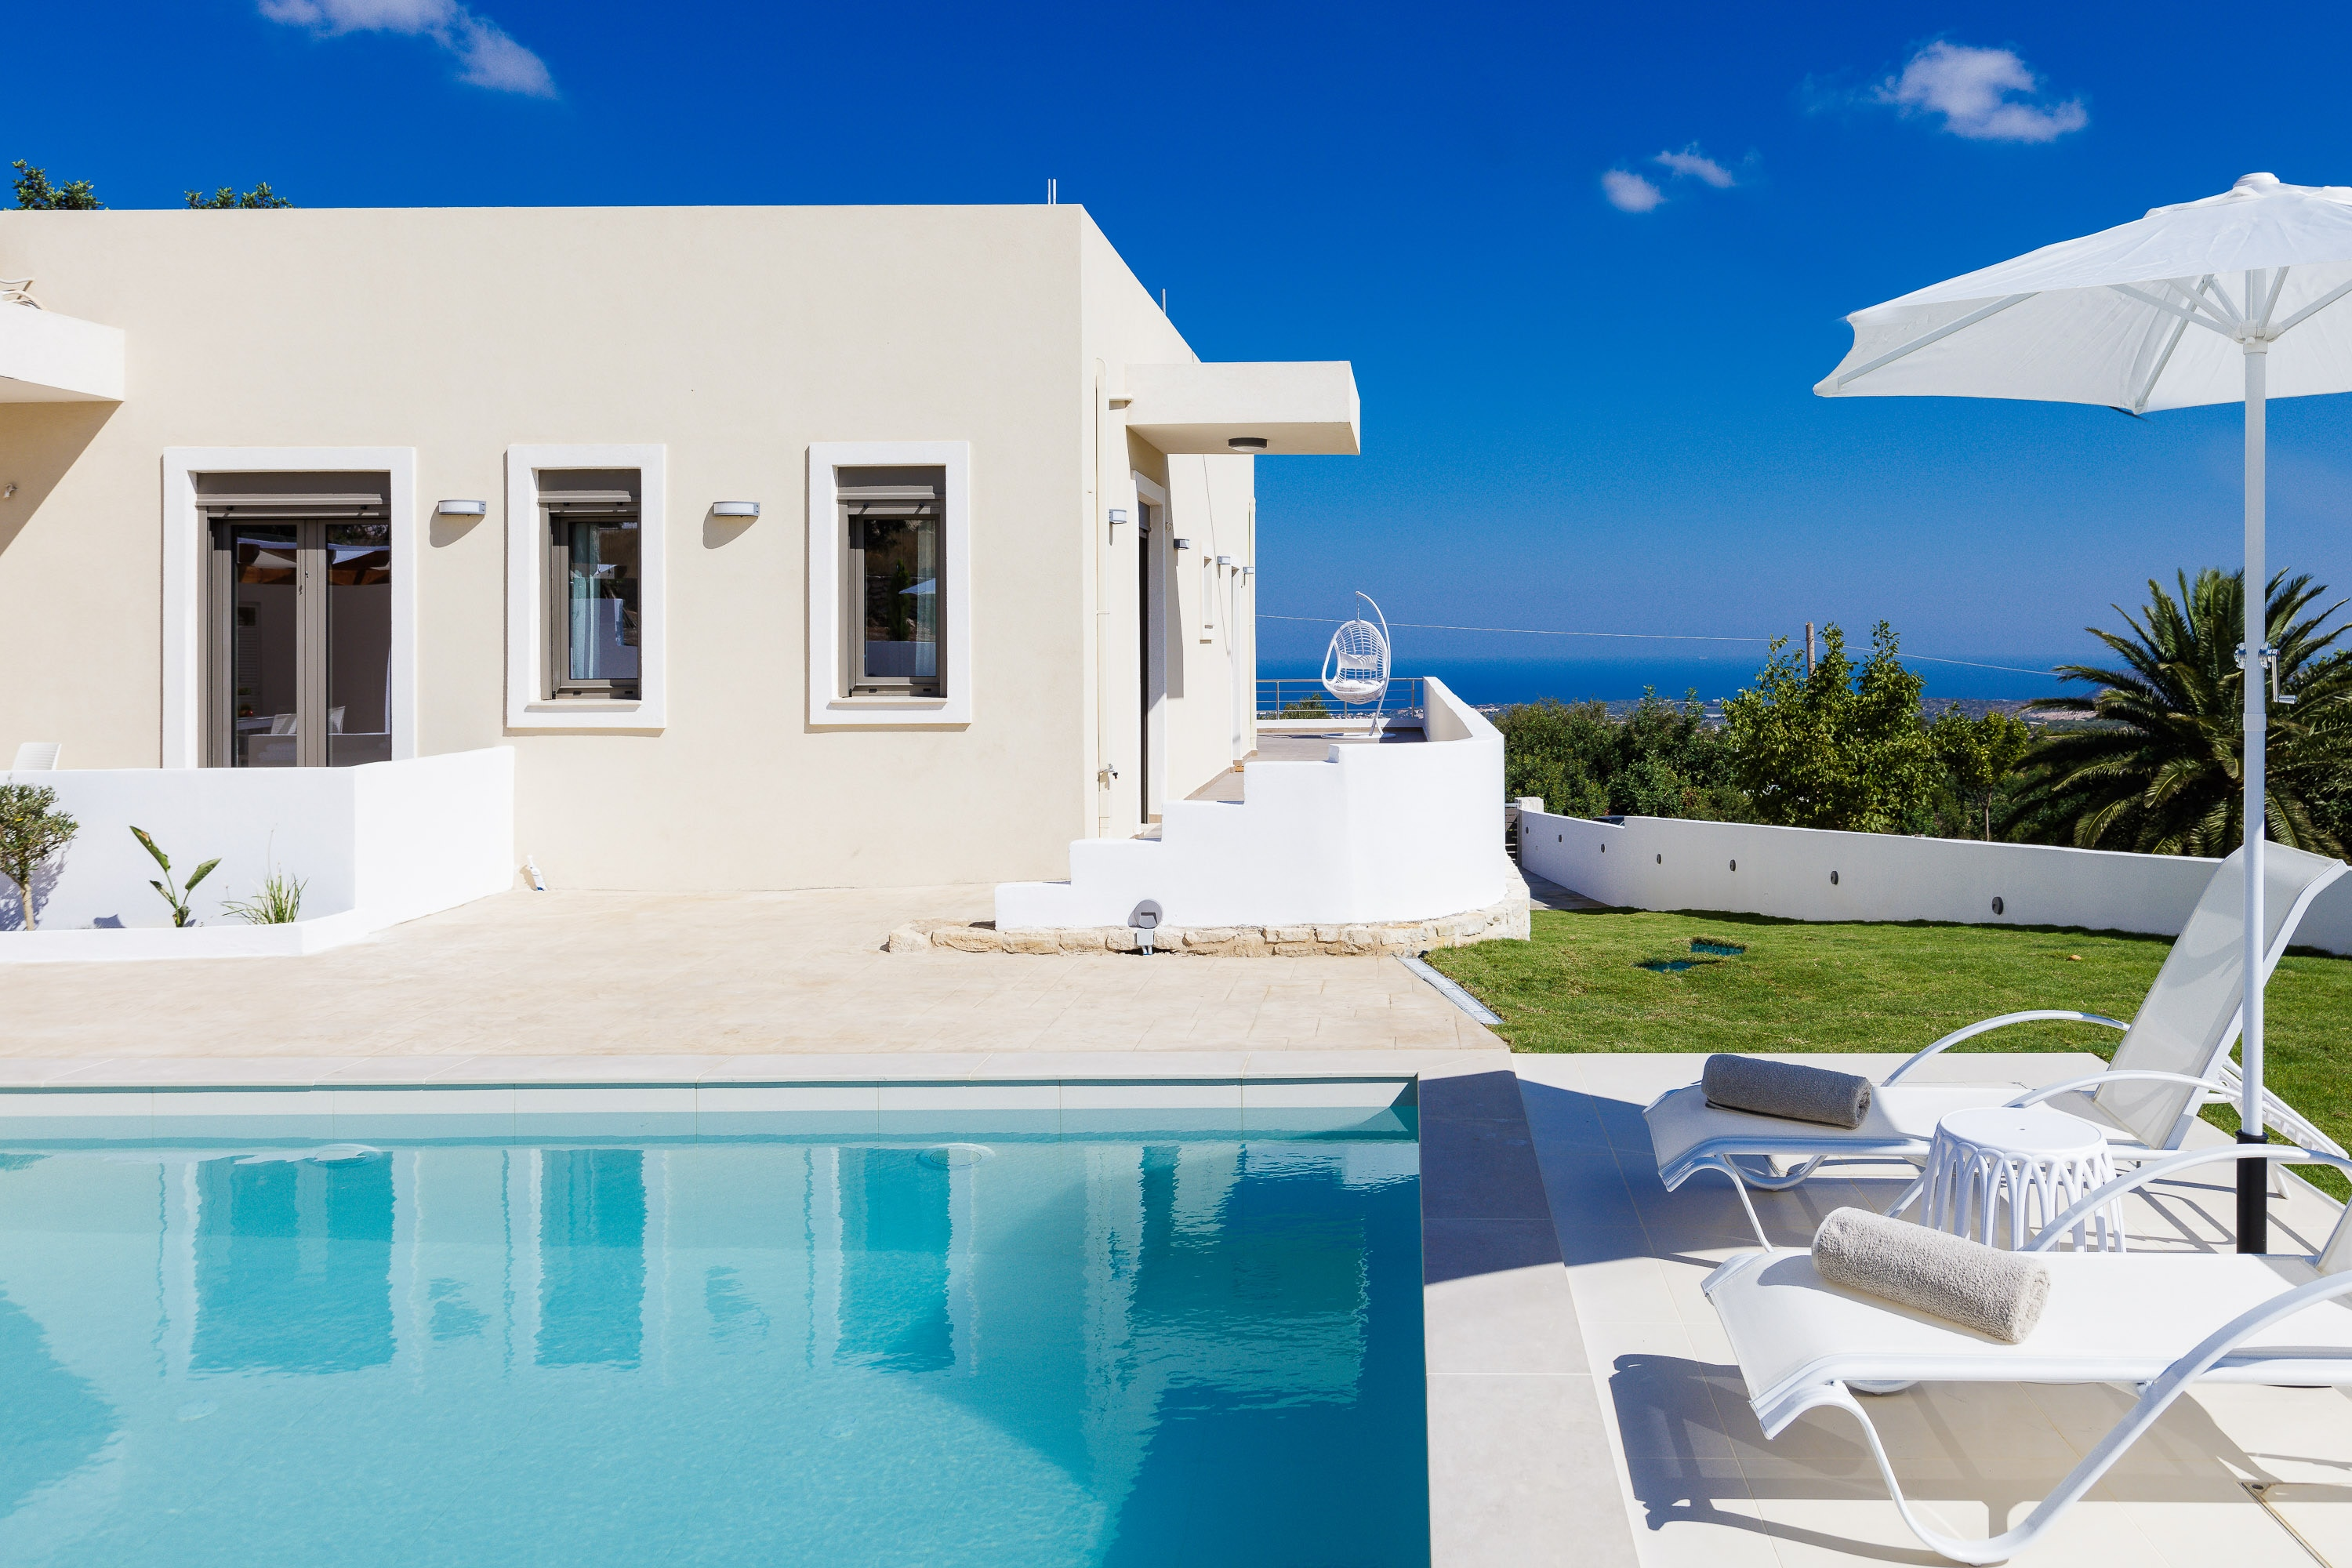 Property Image 2 - Sublime Sanctuary, with Private Pool & Ethereal Surroundings